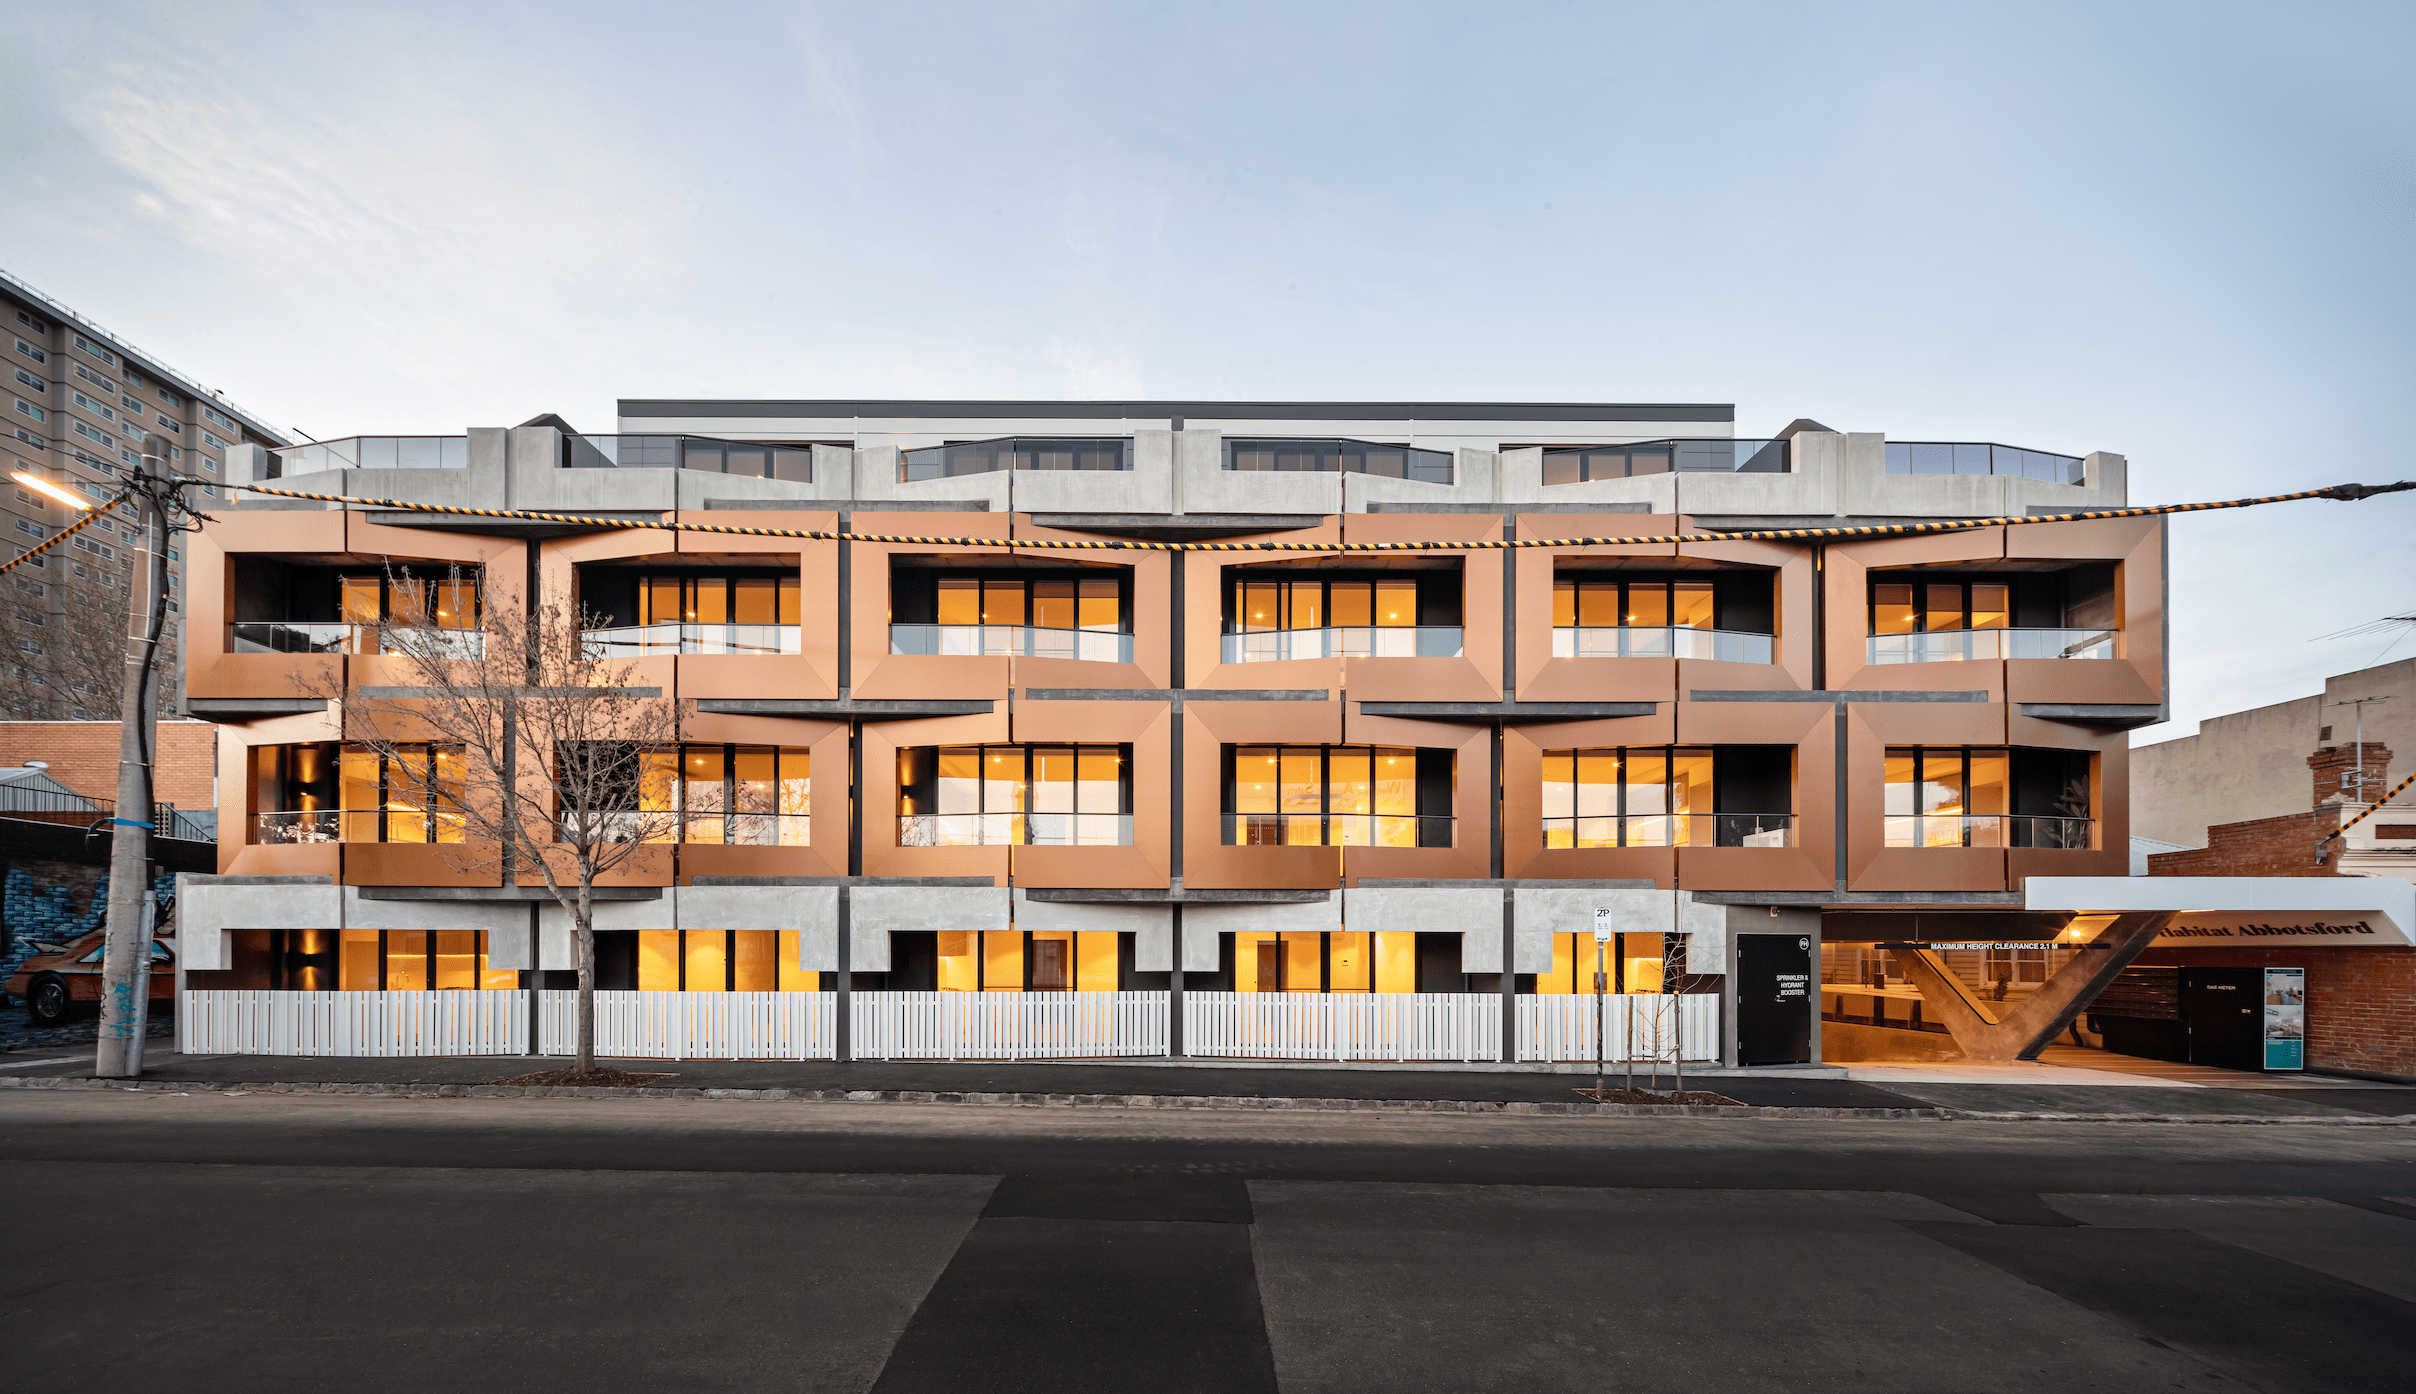 Melbourne apartment of the week: Habitat Abbotsford